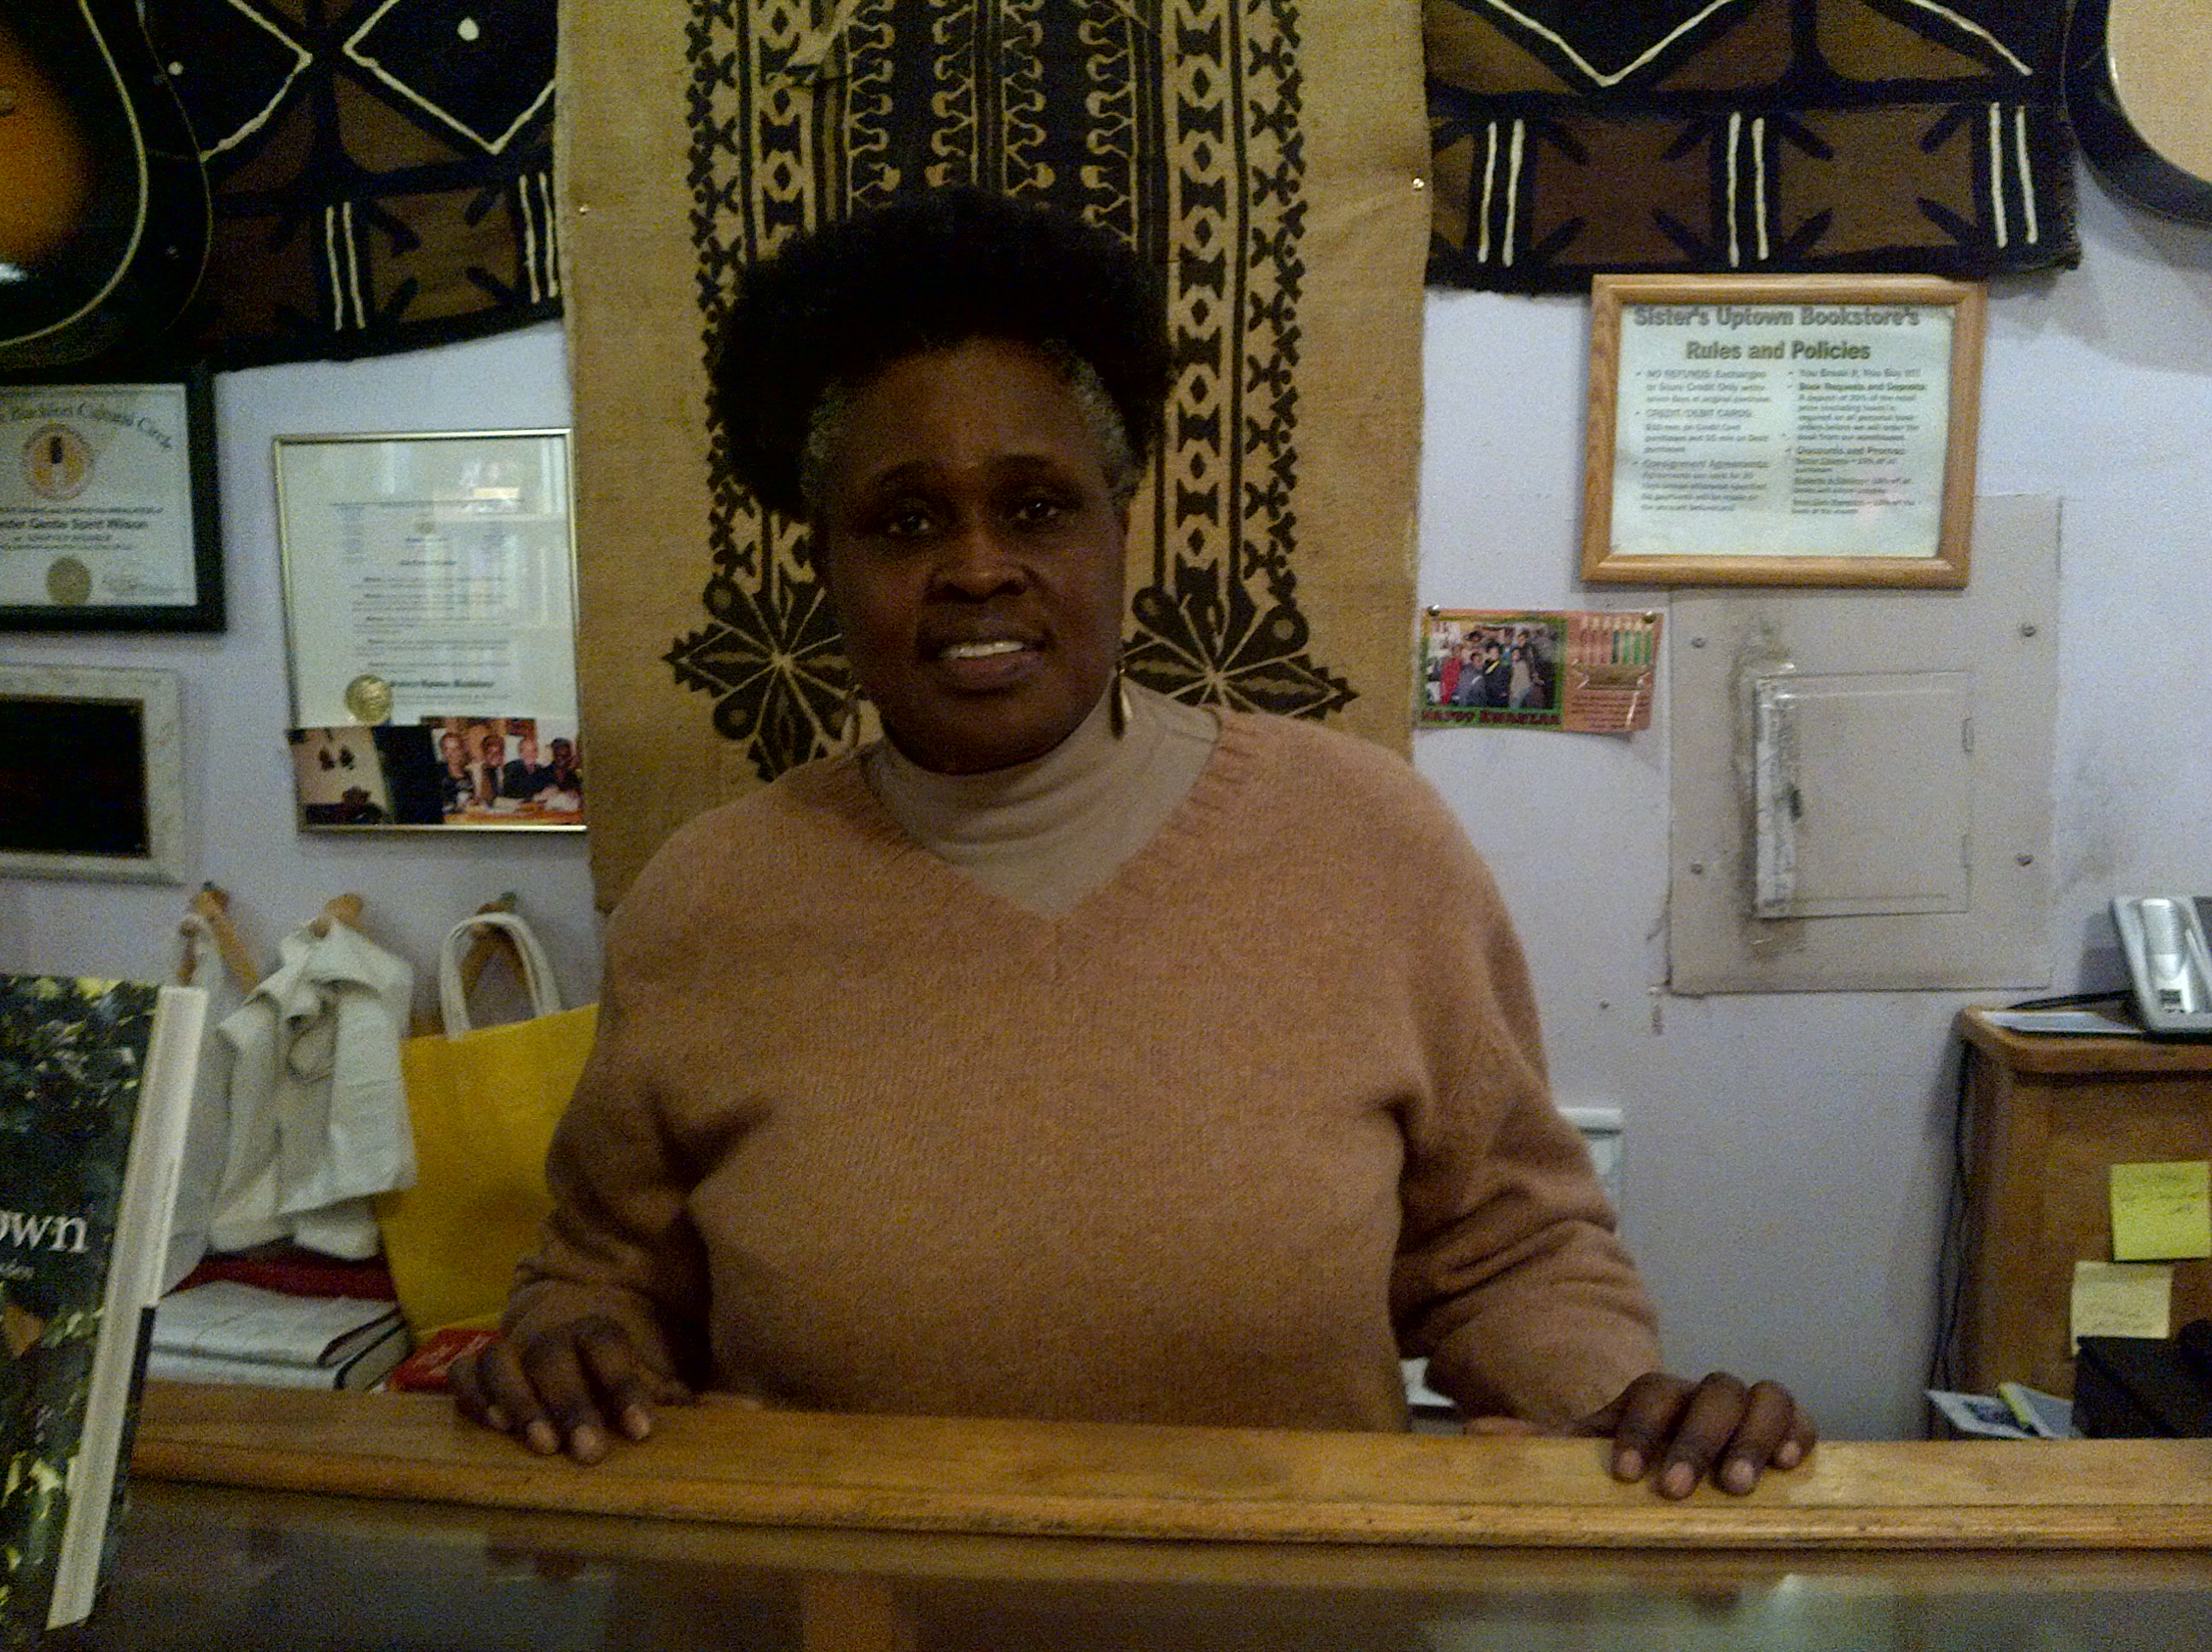 Janifer Wilson- Owner of Sisters Uptown Bookstore and Cultural Center